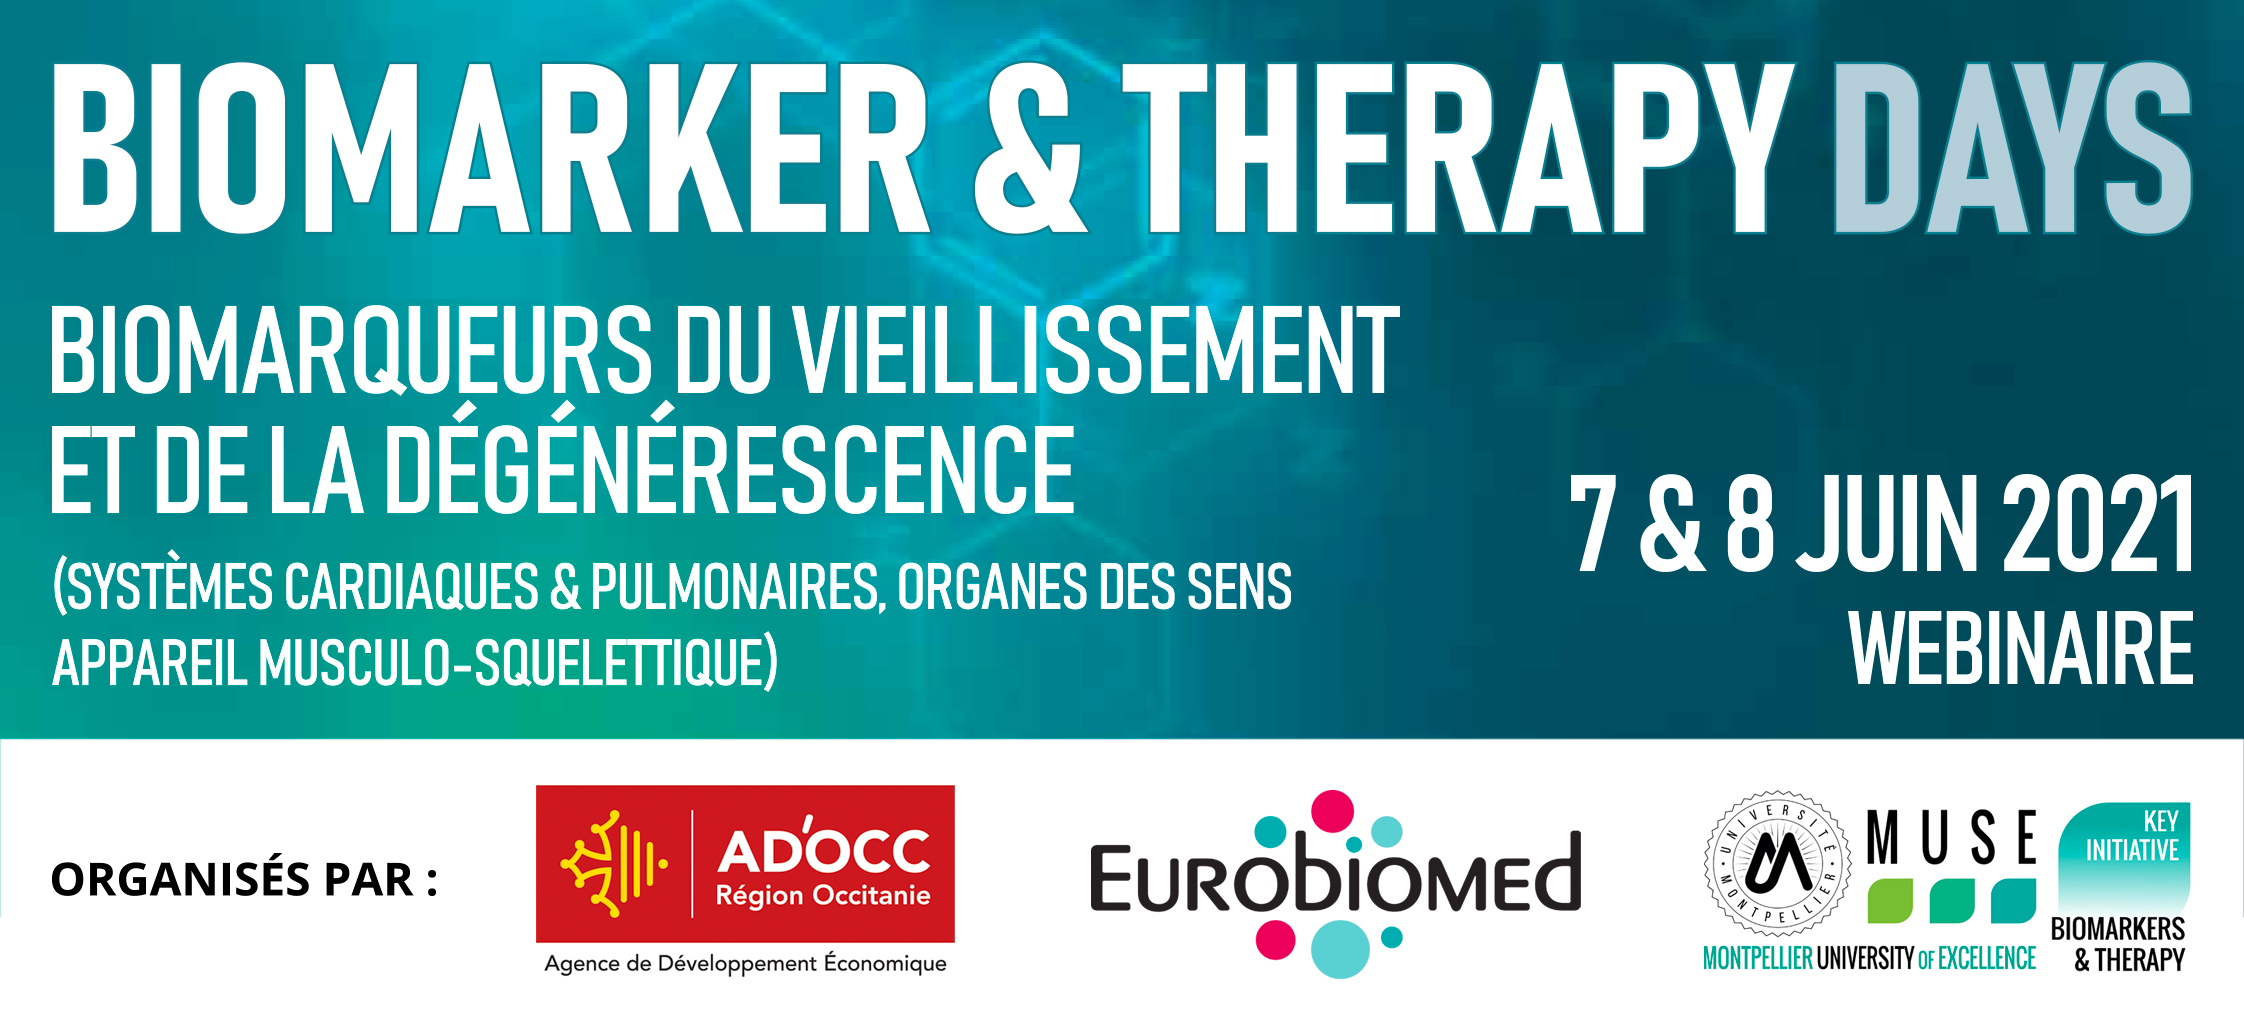 Bandeau - Biomarker & Therapy Days 2021